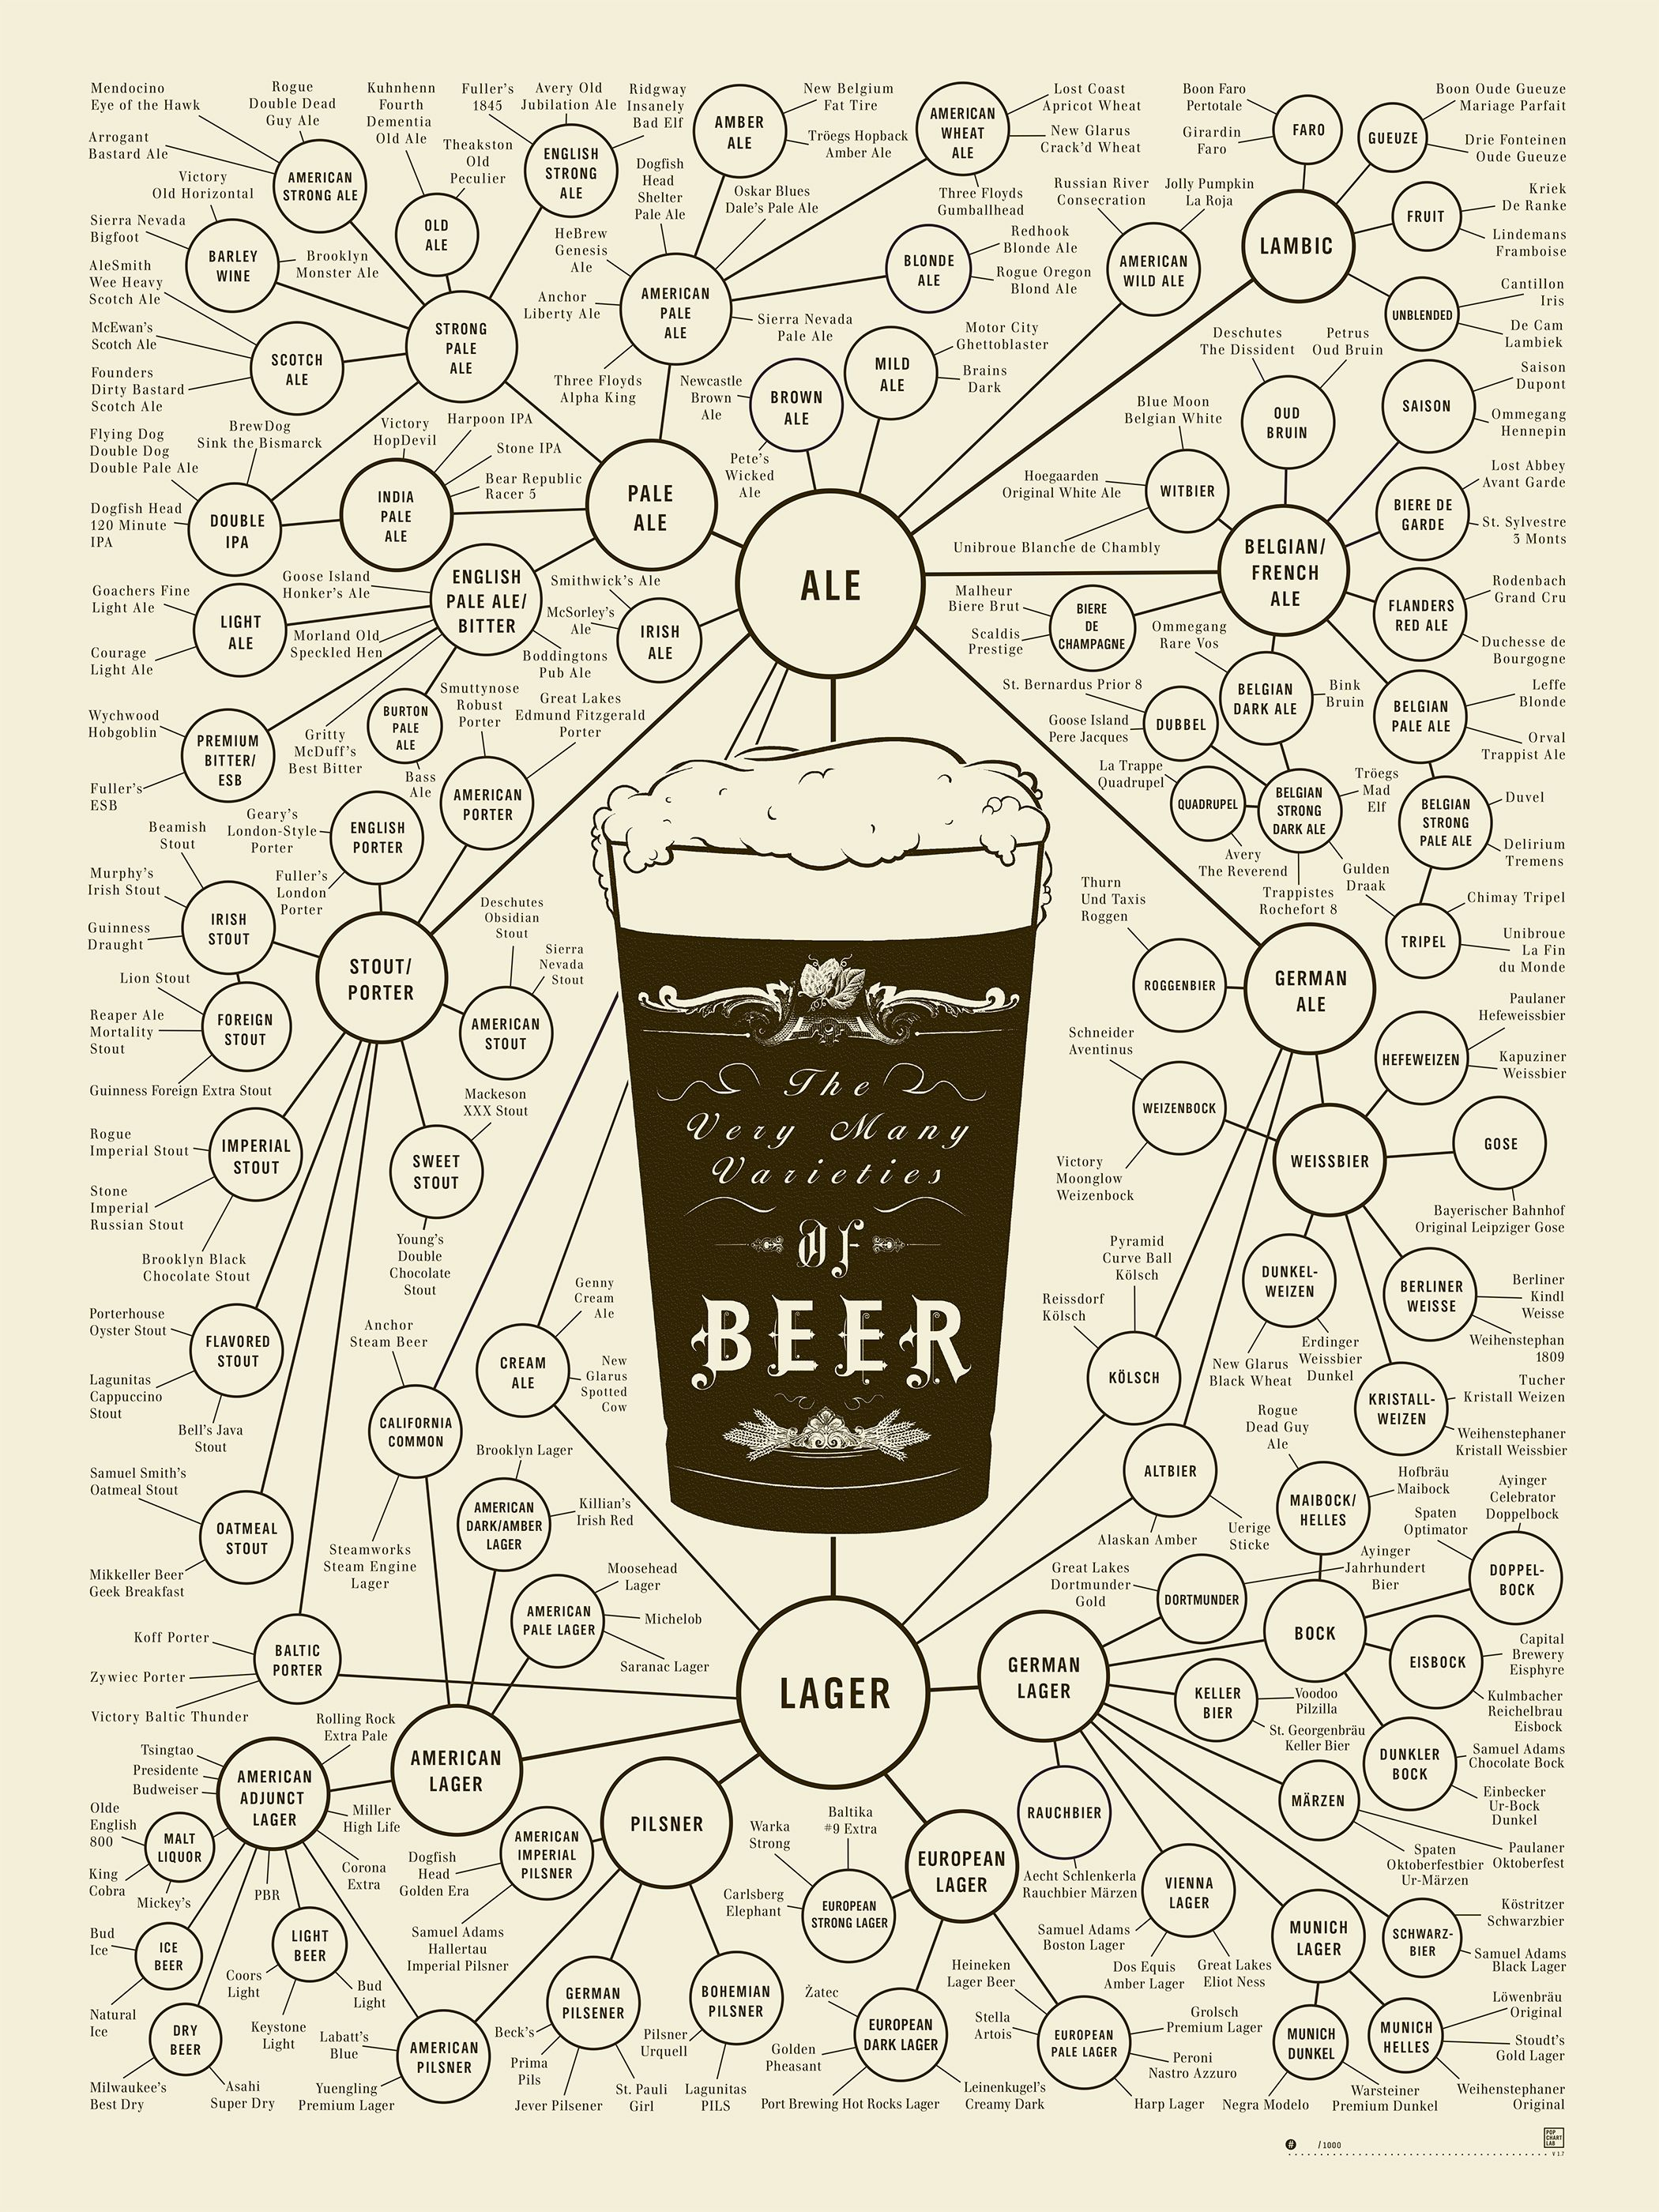 Pop chart lab design data delight the very many varieties of beer